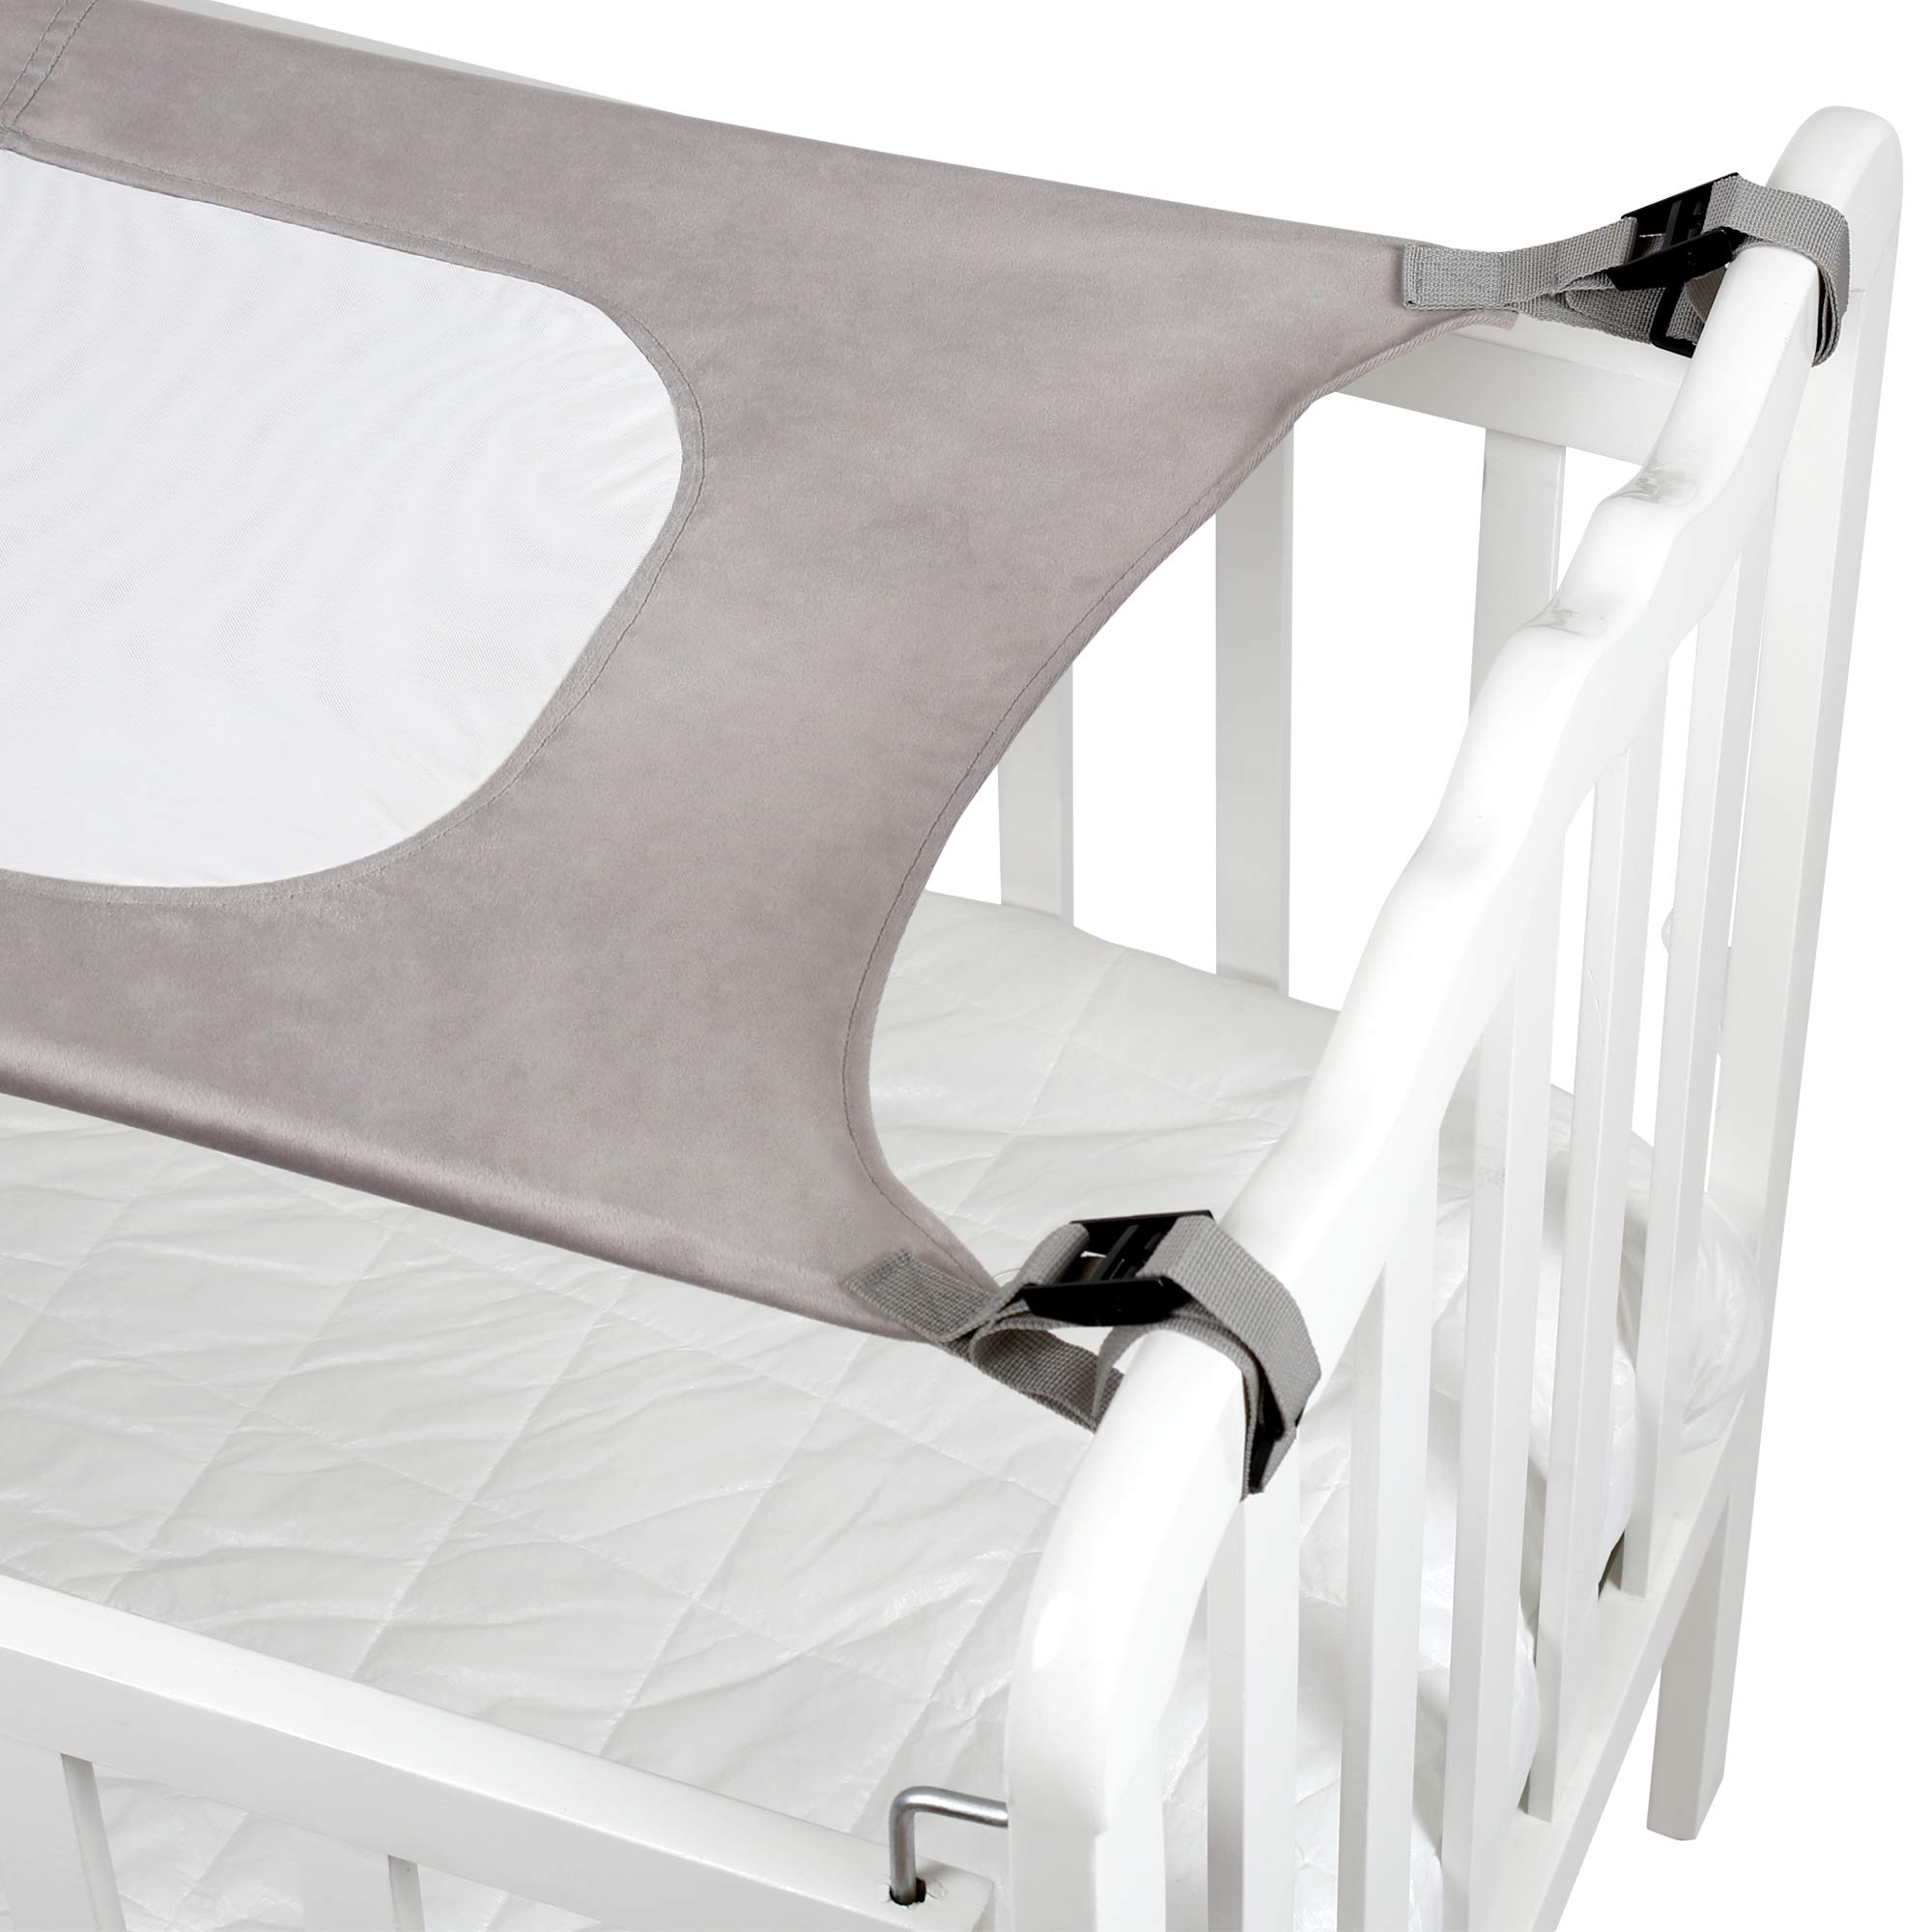 Baby Crib Hammock by Easy Gorilla - Newborn Bed Sleeping Essentials for Boys and Girls - Breathable and Portable - Infant Sleep Comfort Gifts for Indoor Cot - Cradle - Safety Mesh Nursery Nap Hammocks by EasyGorilla (Image #4)